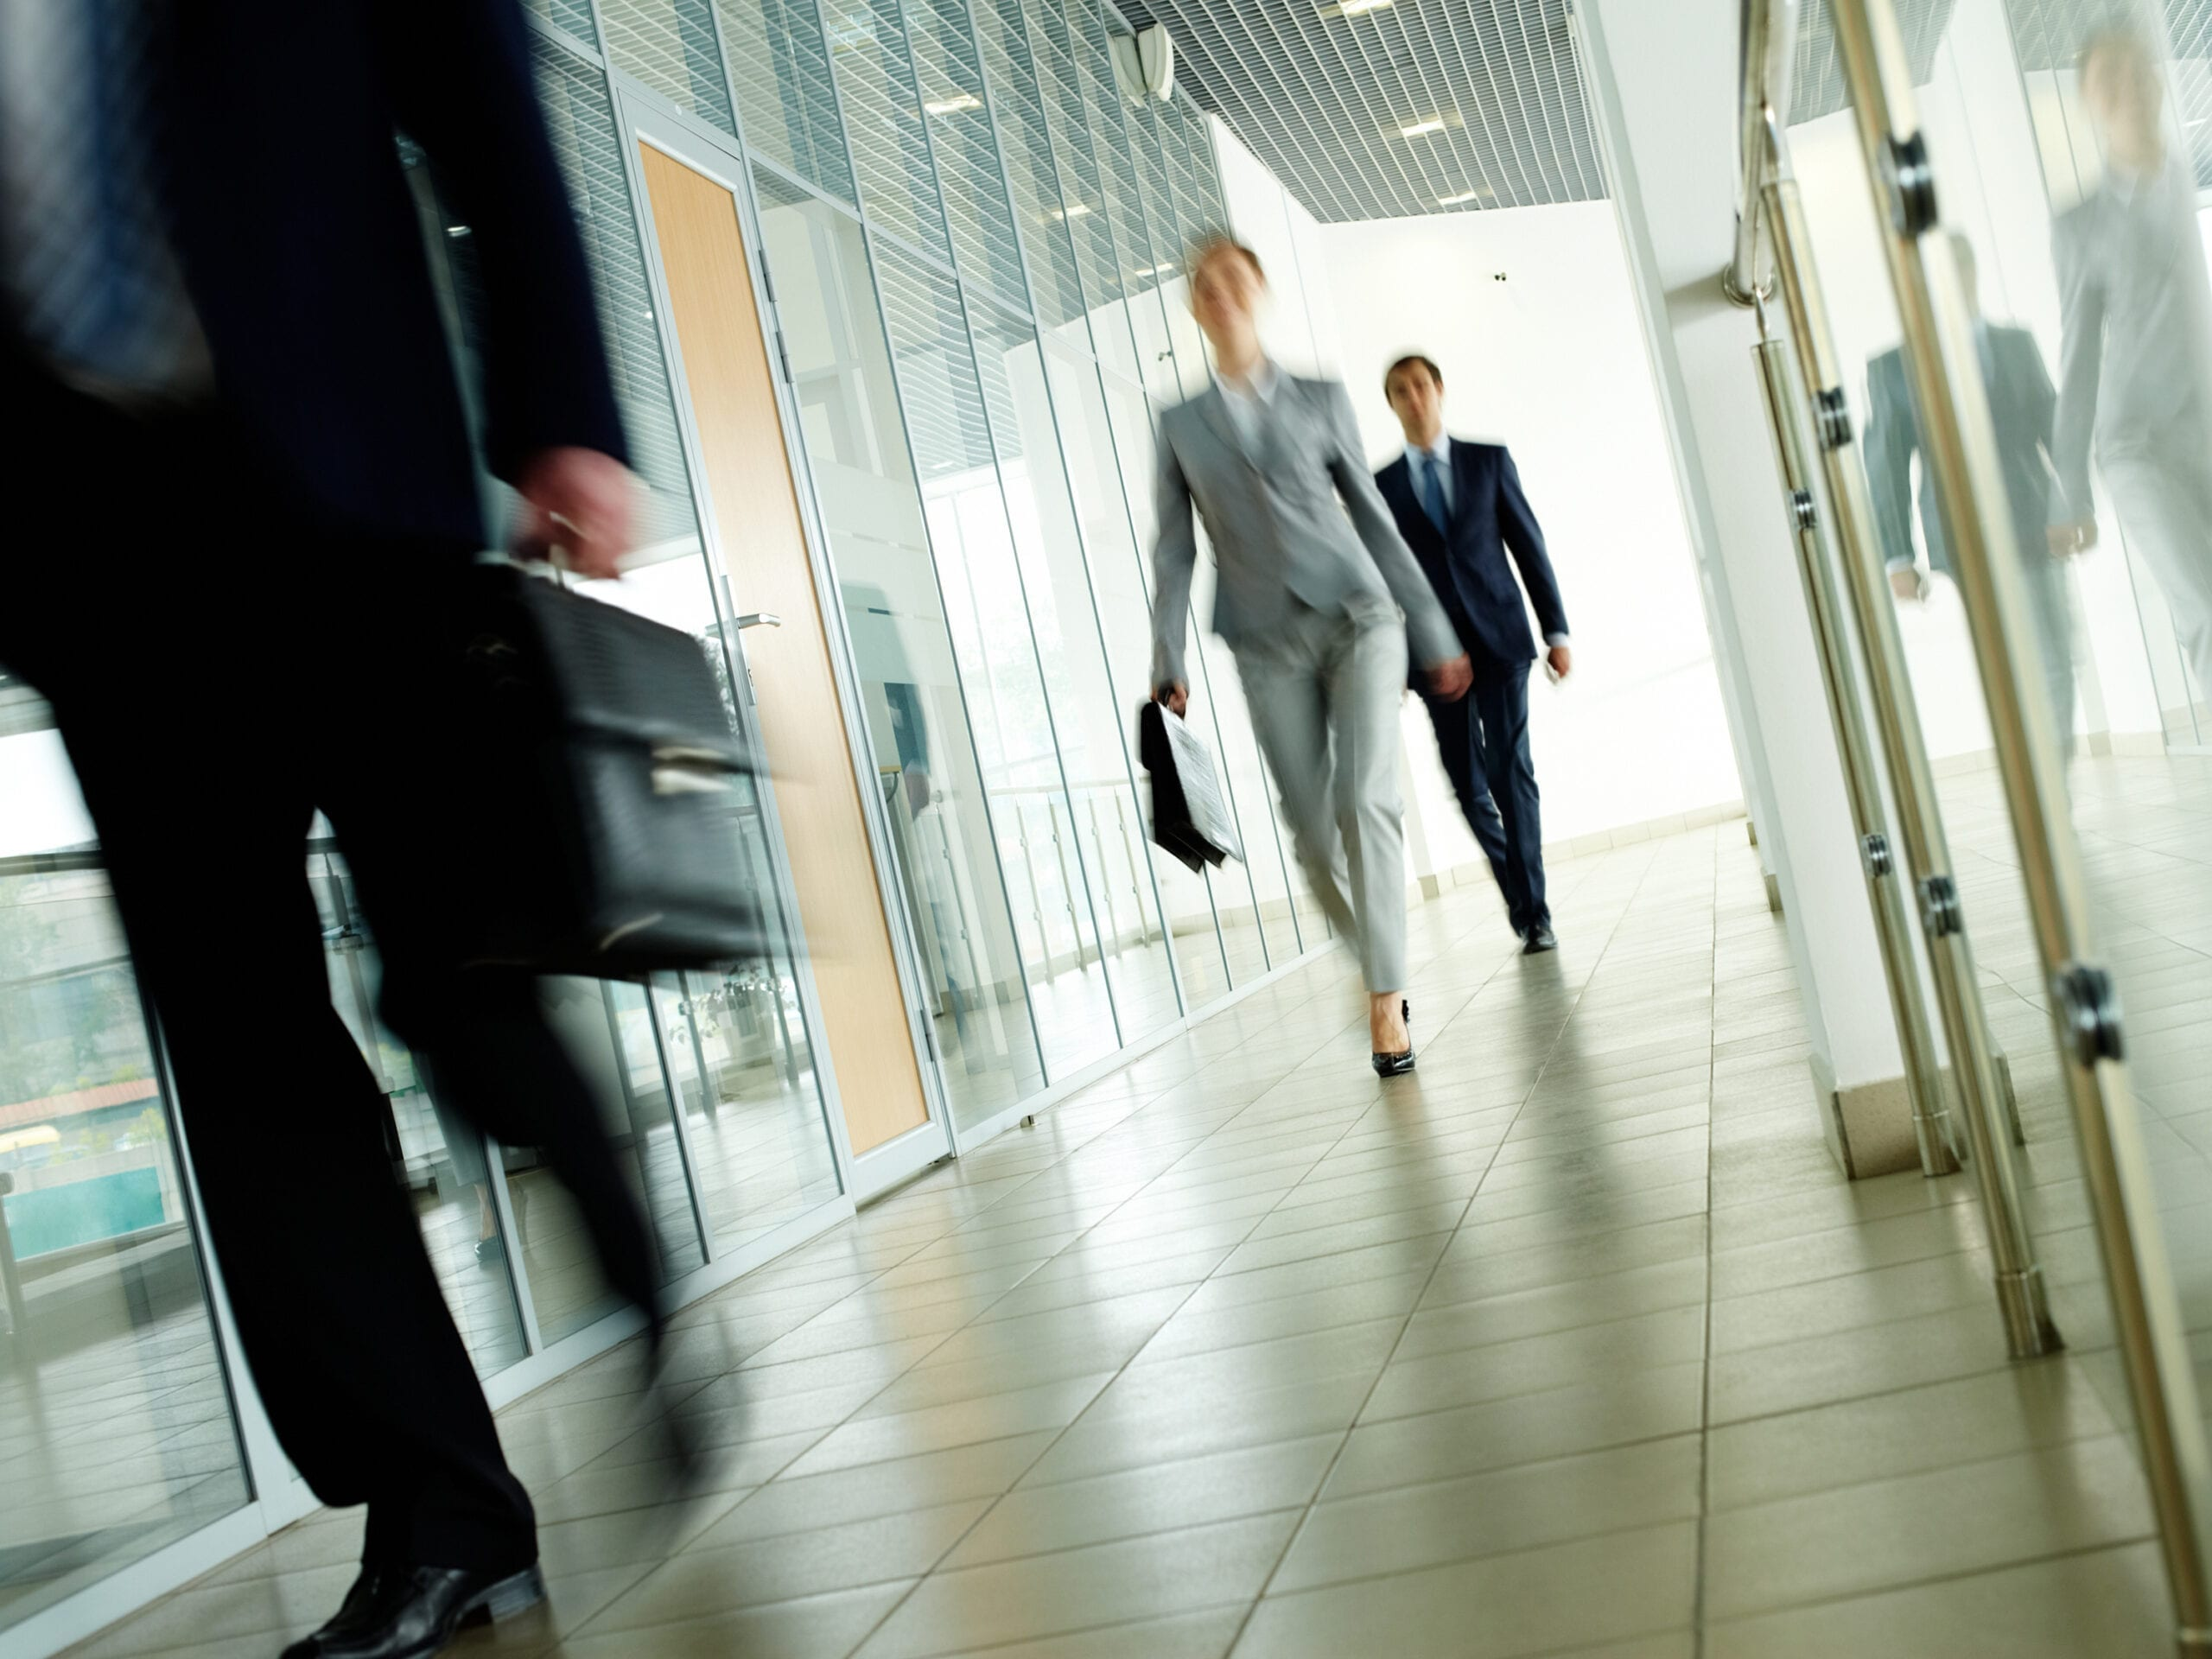 Business people walking down a hallway. RDM has extensive experience in employment and labor law.